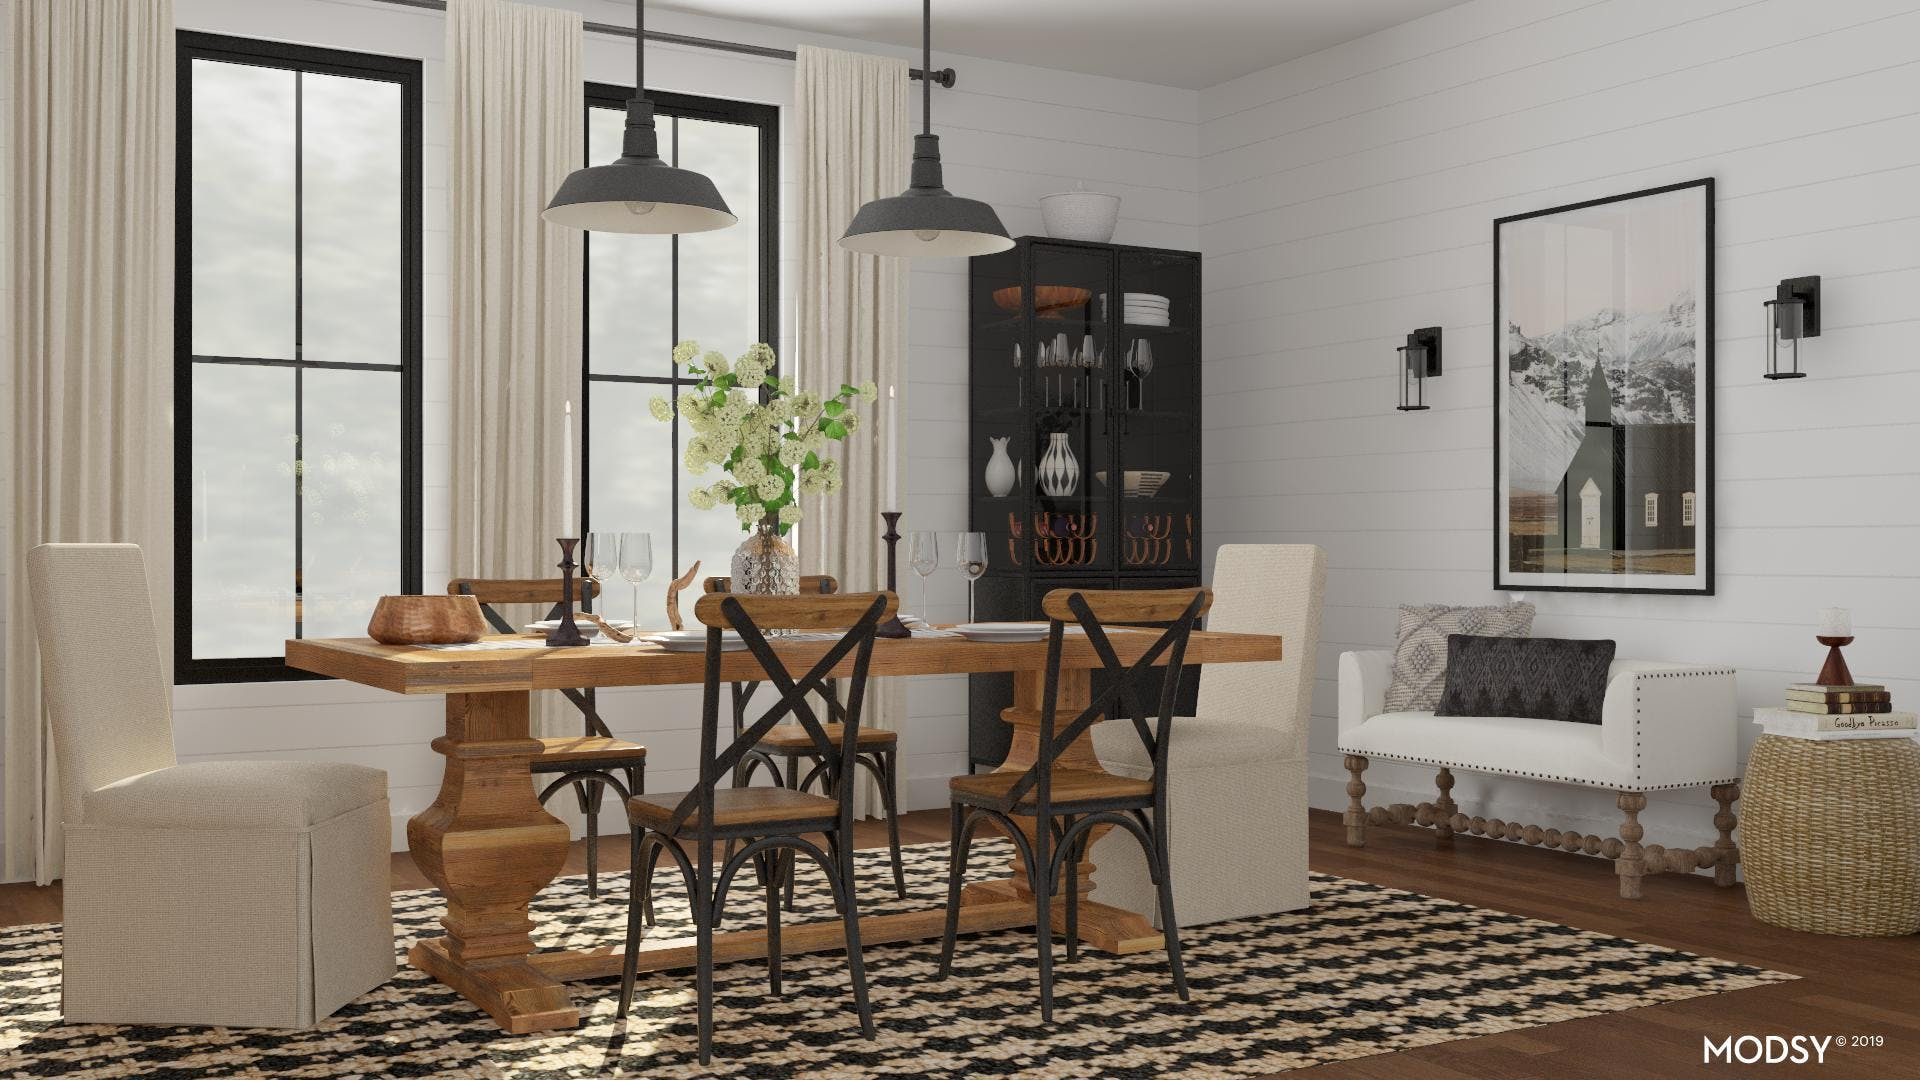 Rustic Dining Room With Industrial Elements